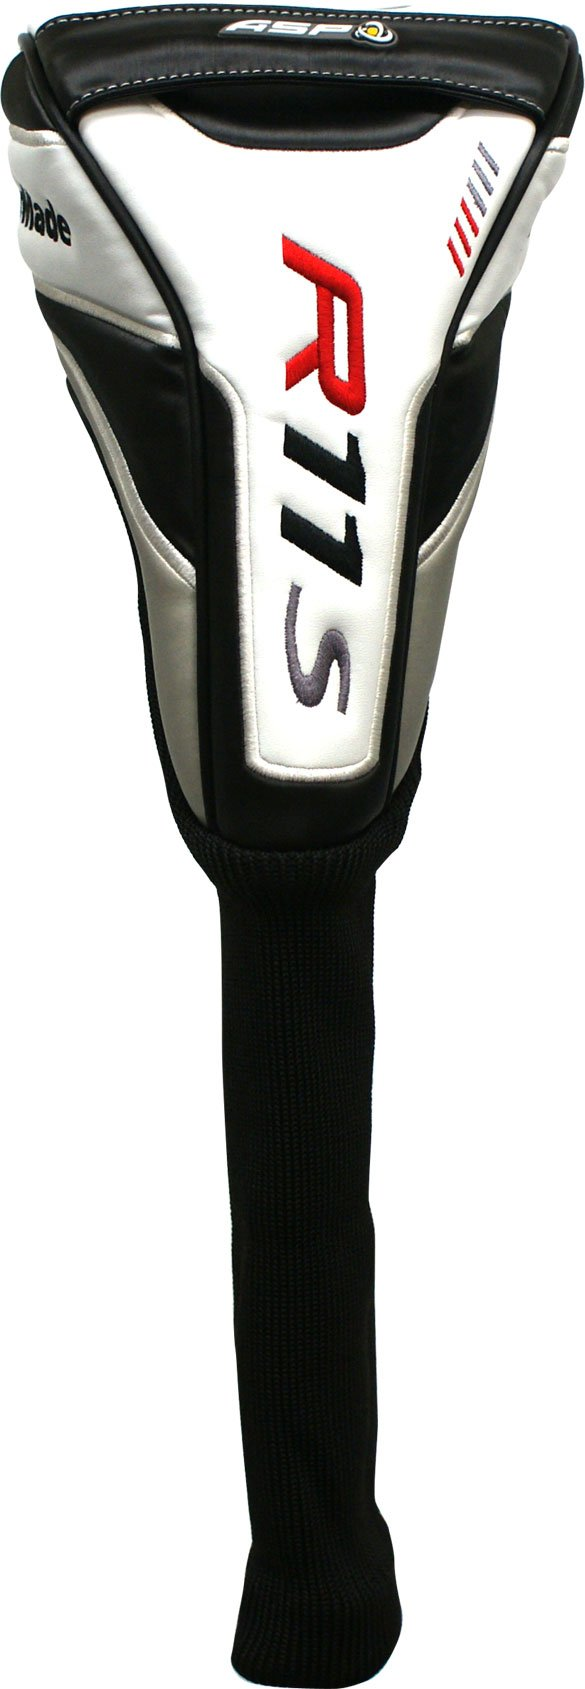 Taylor Made R11S Driver Headcover (Wht/Blk/Red) 460cc Golf Club Cover NEW by Taylor Made